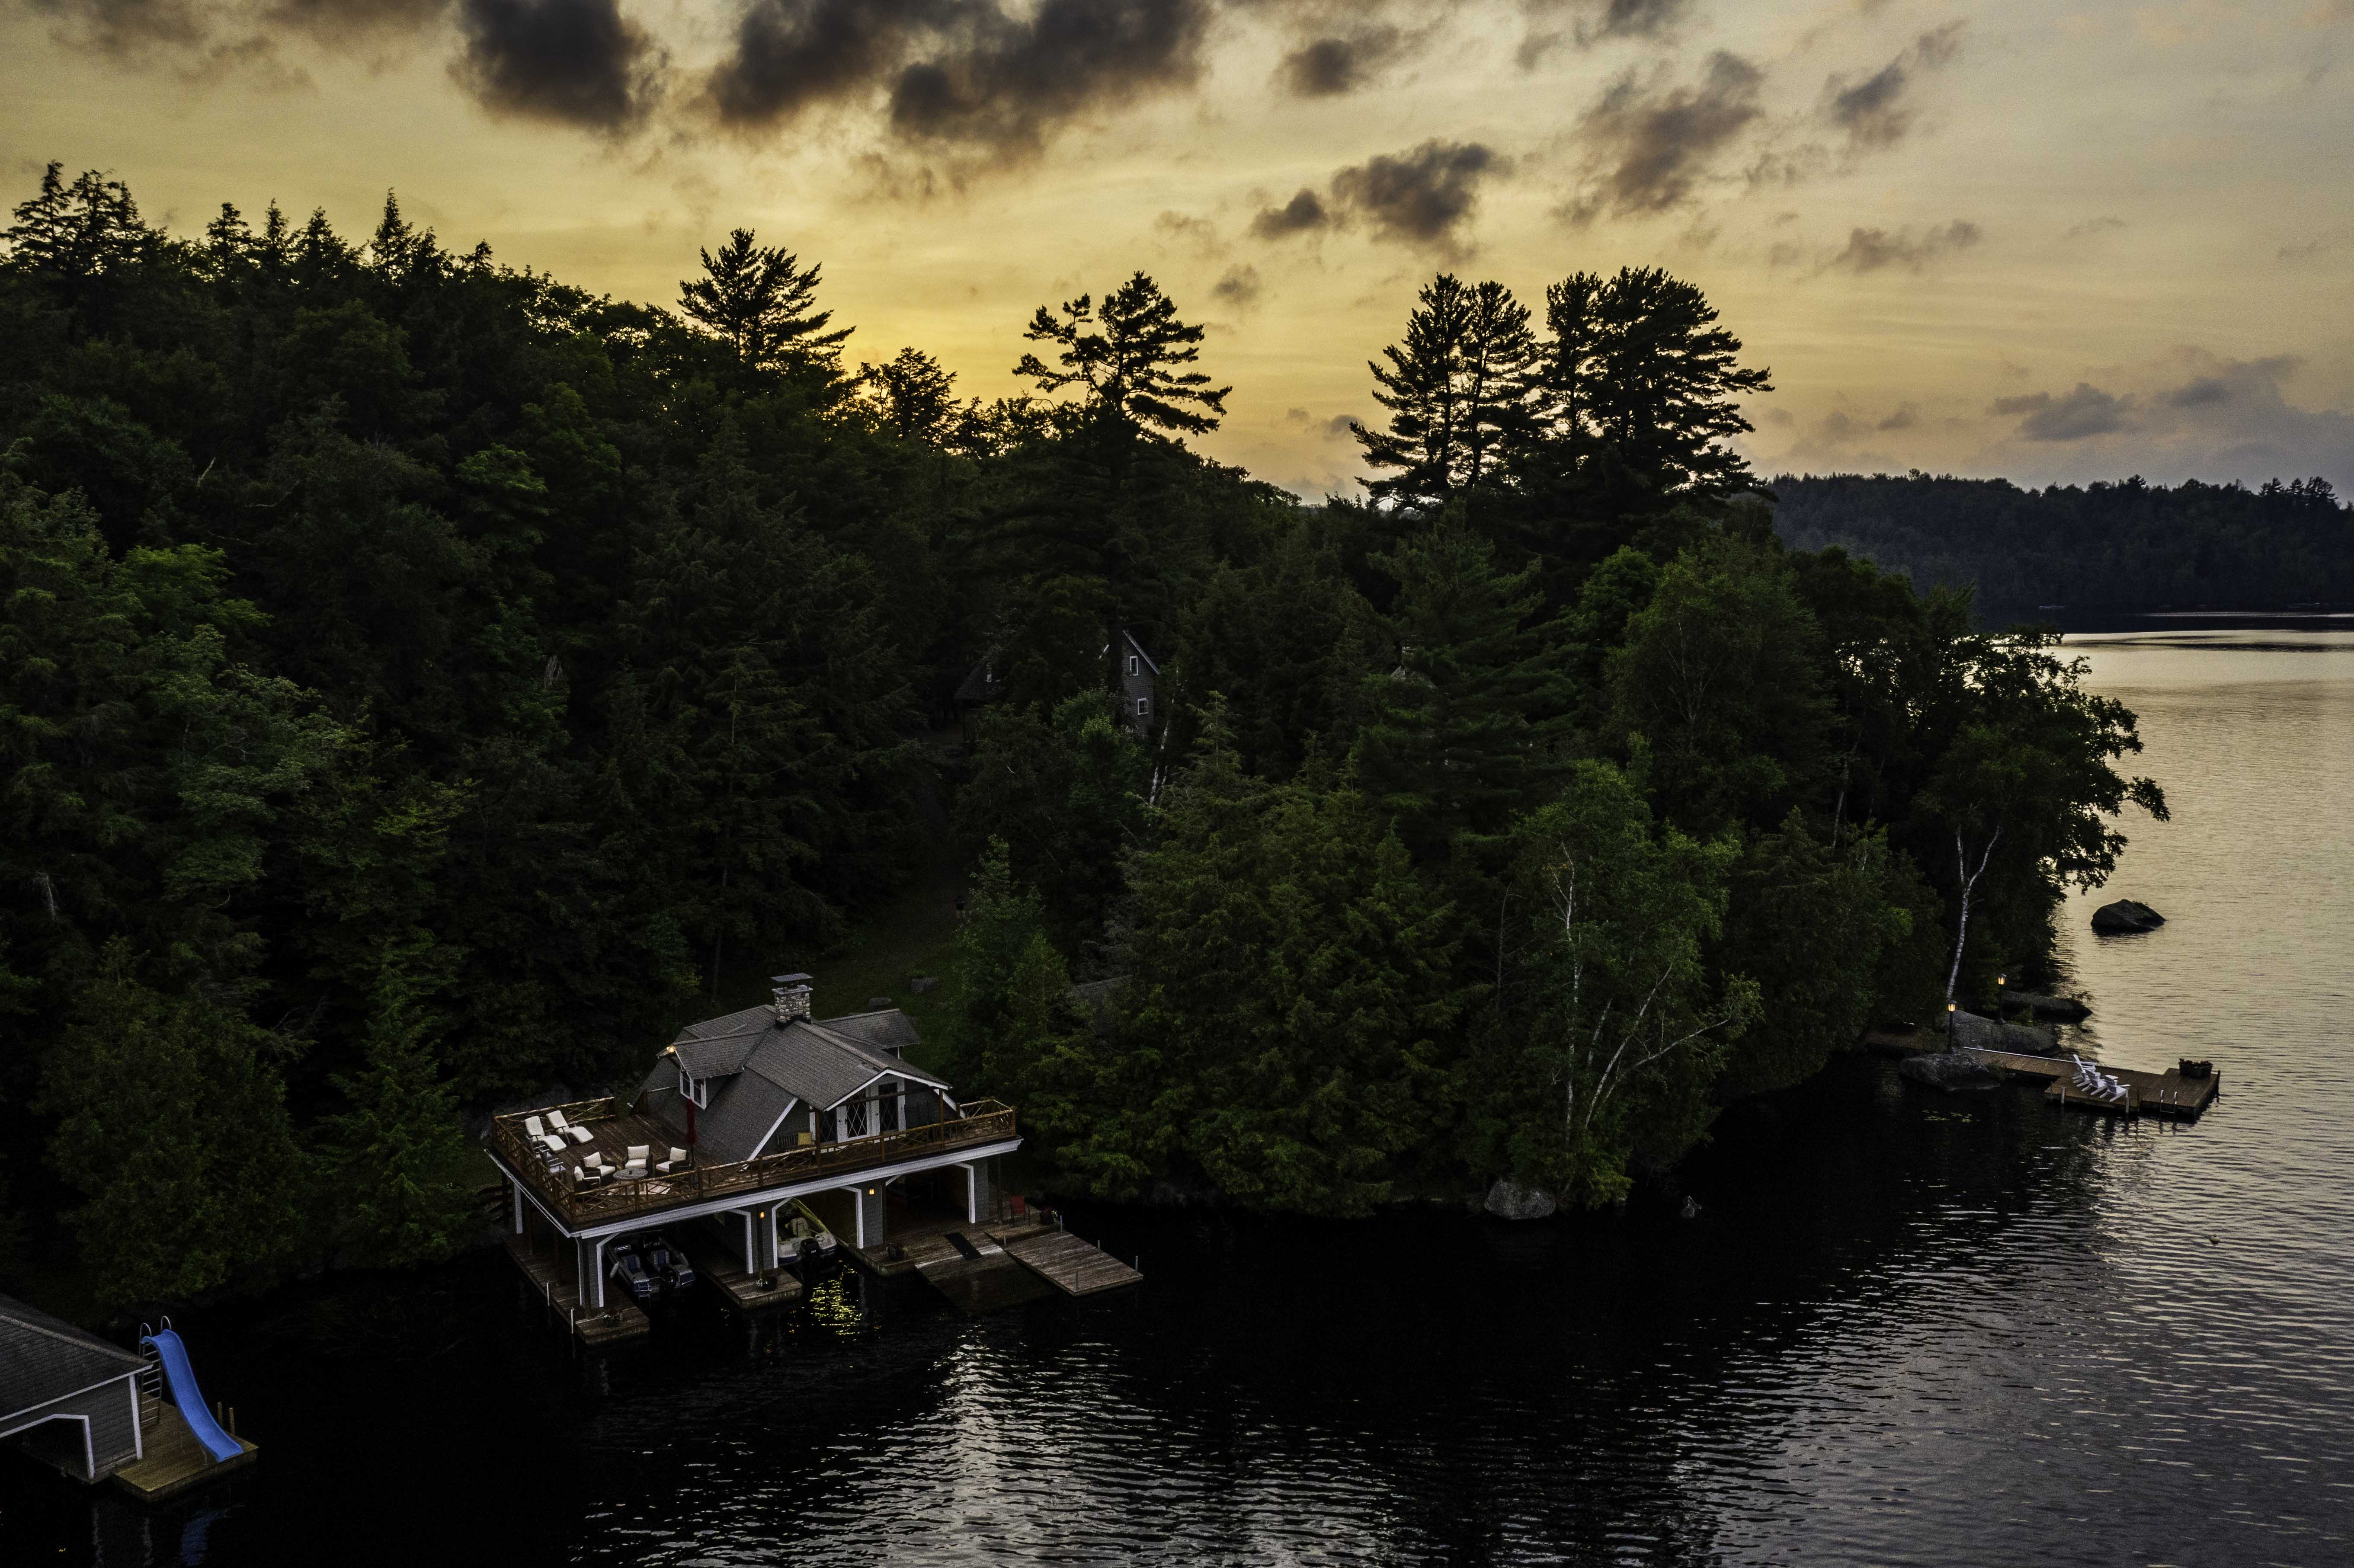 Twilight Real Estate drone photography shoot in Upper Saranac Lake, Tupper Lake, NY